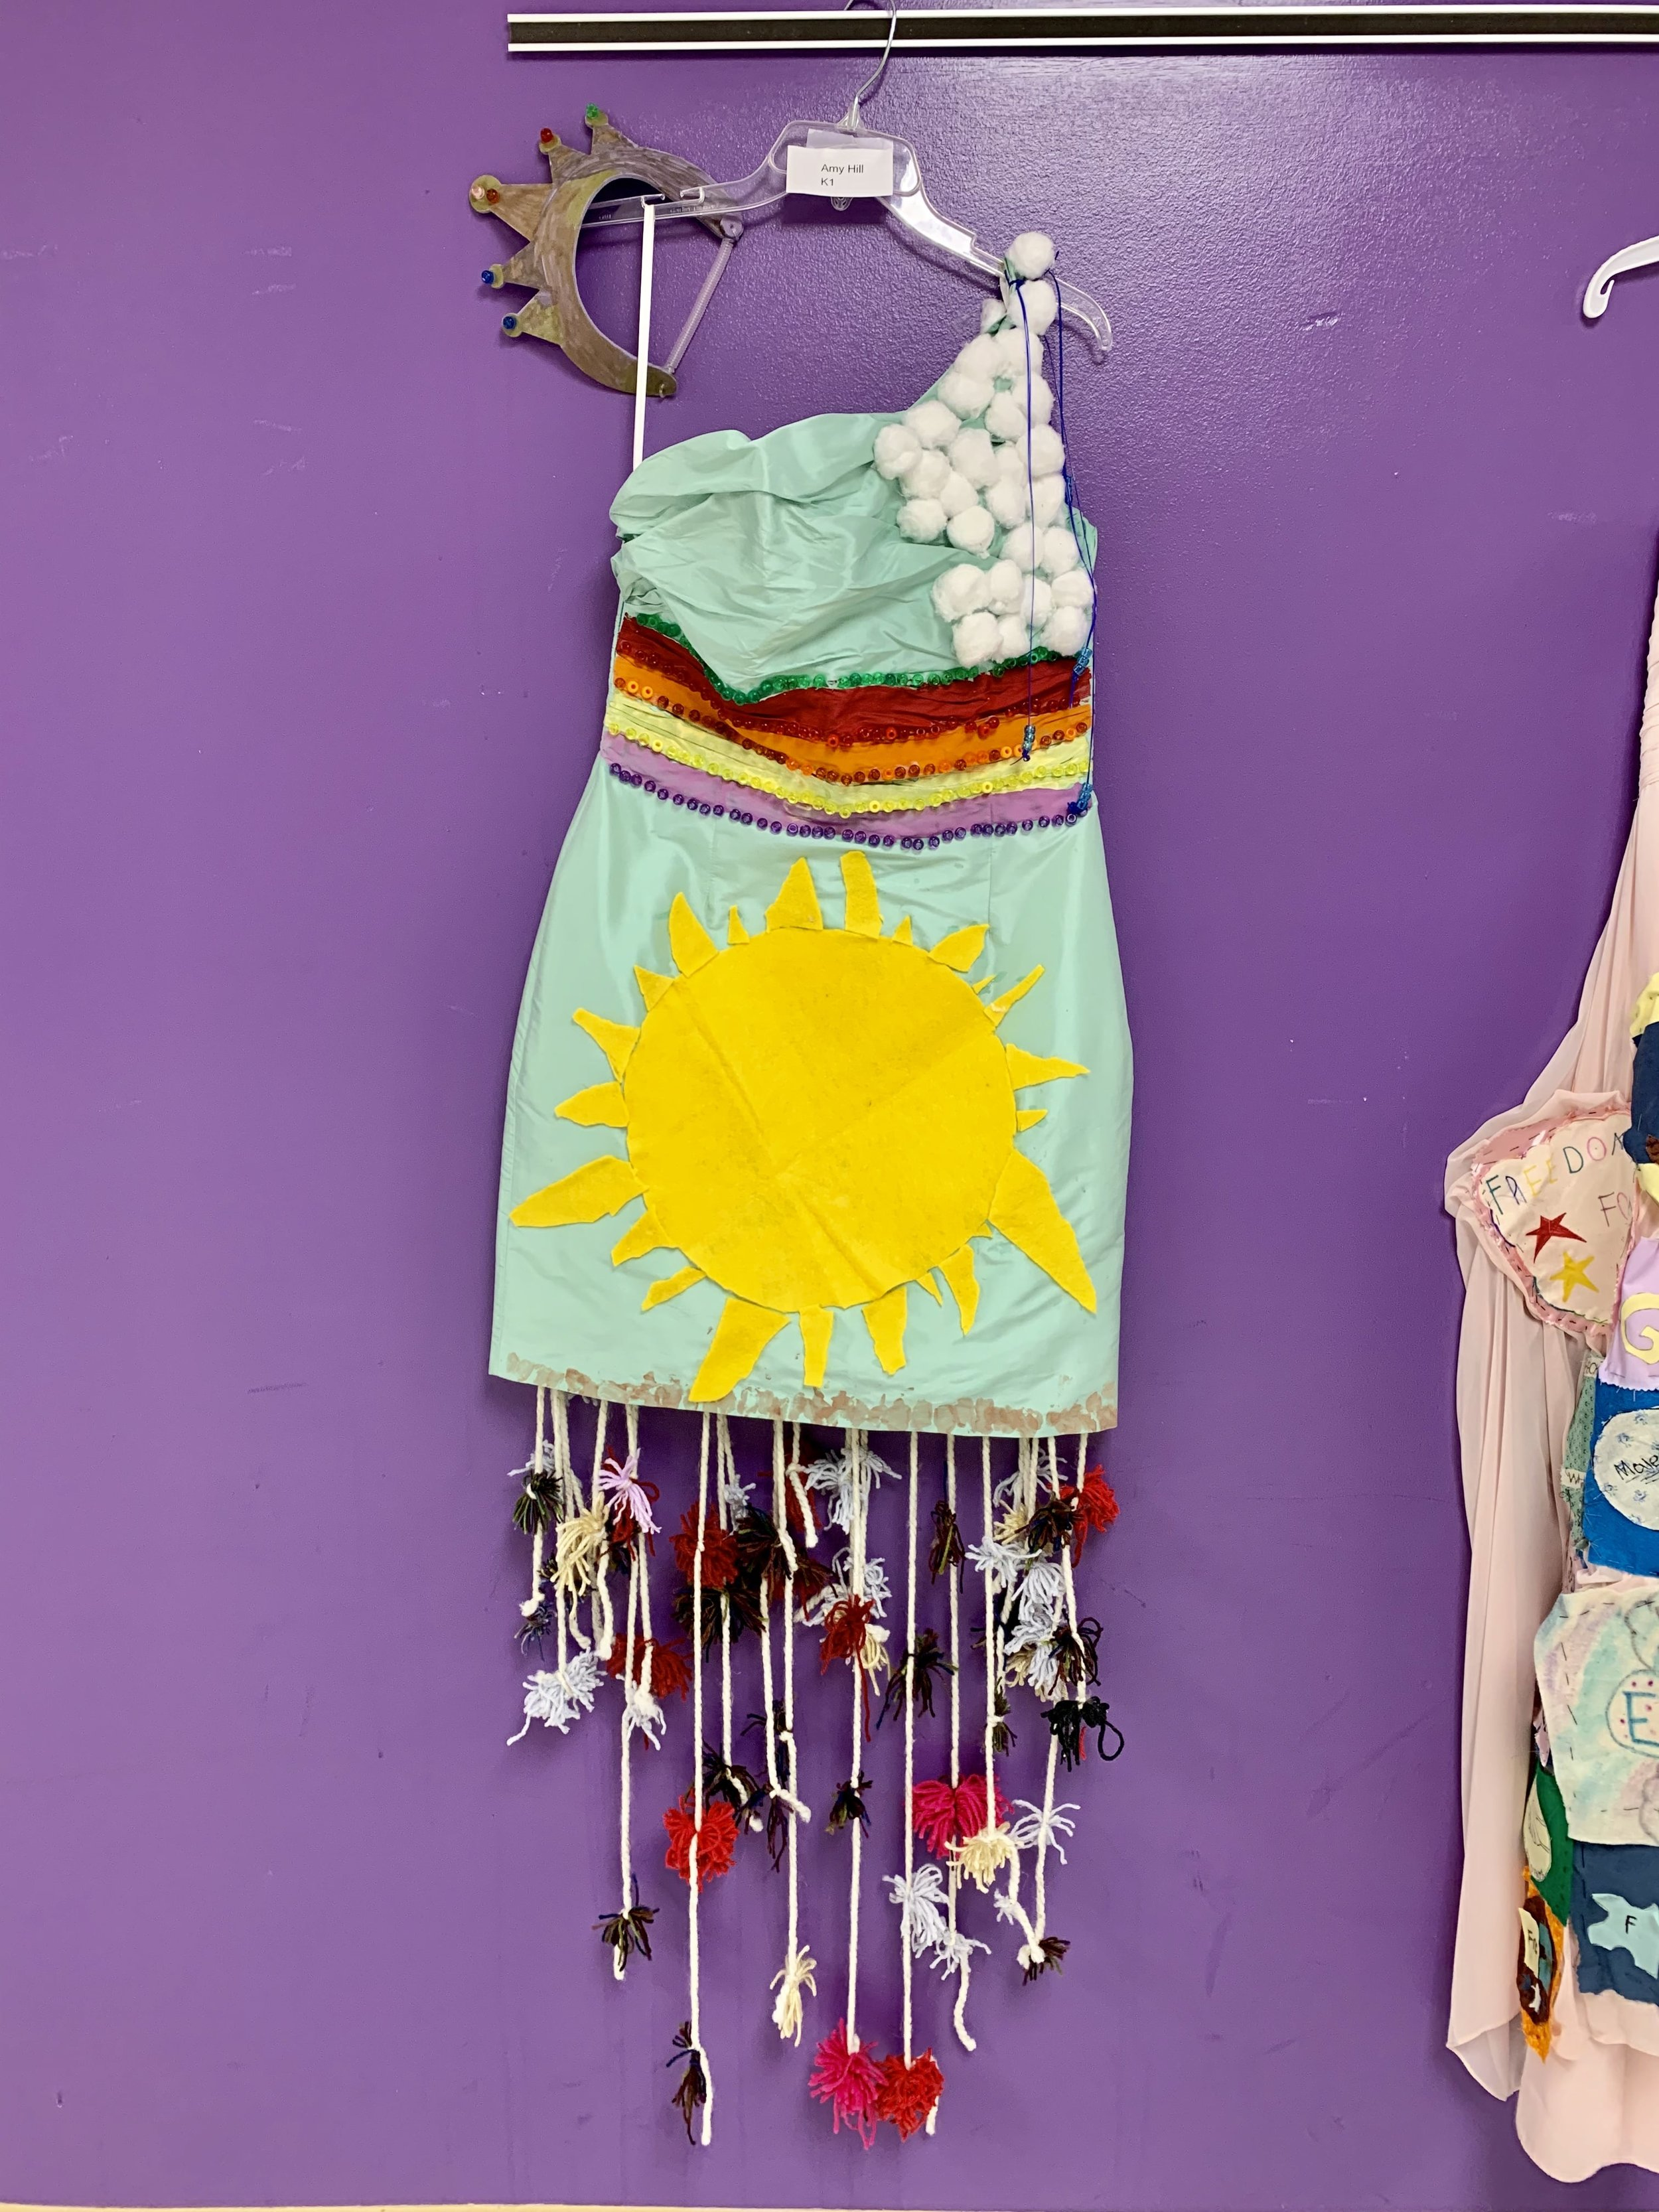 Columbus Ohio Elementary school students use donated dresses from Gilded Social for art